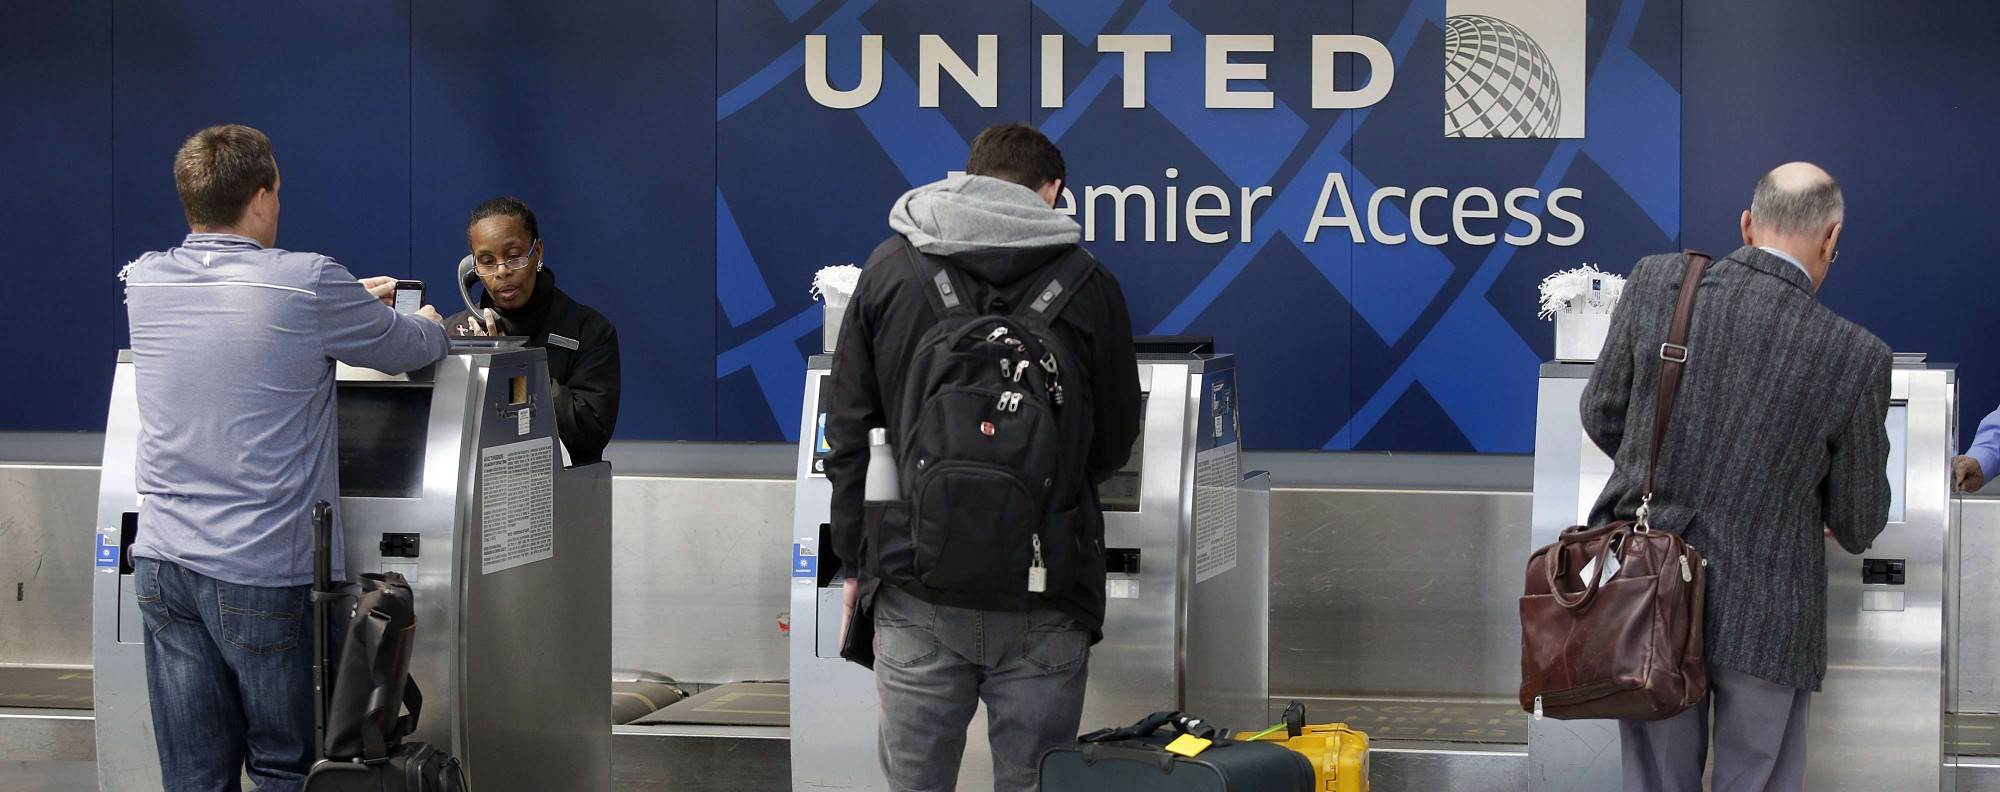 Travelers check-in at United Airlines at O'Hare International Airport. Photo; AFP